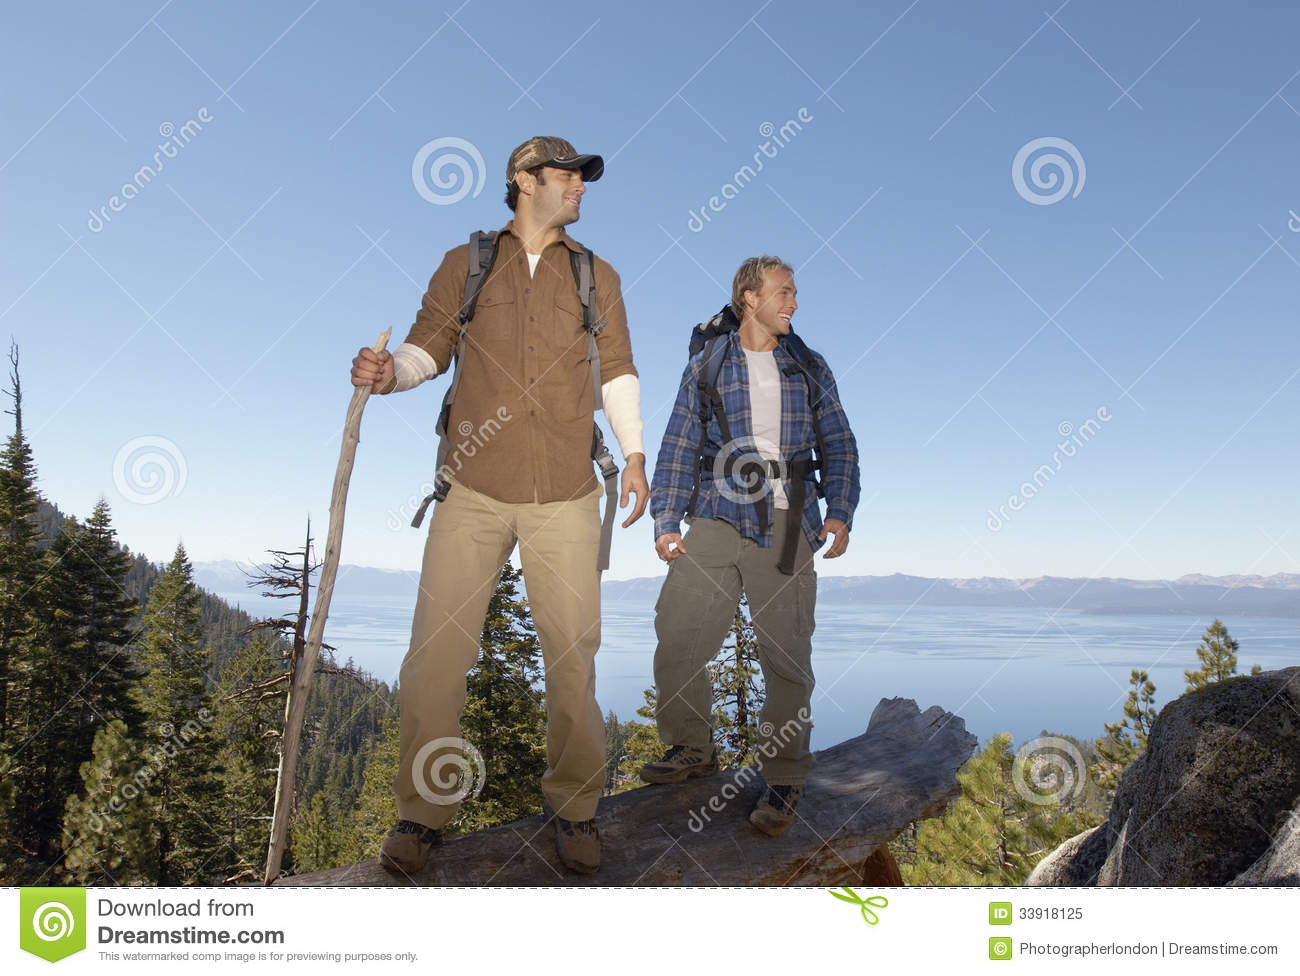 Hikers Standing On Log Near Forest Stock Image - Image of